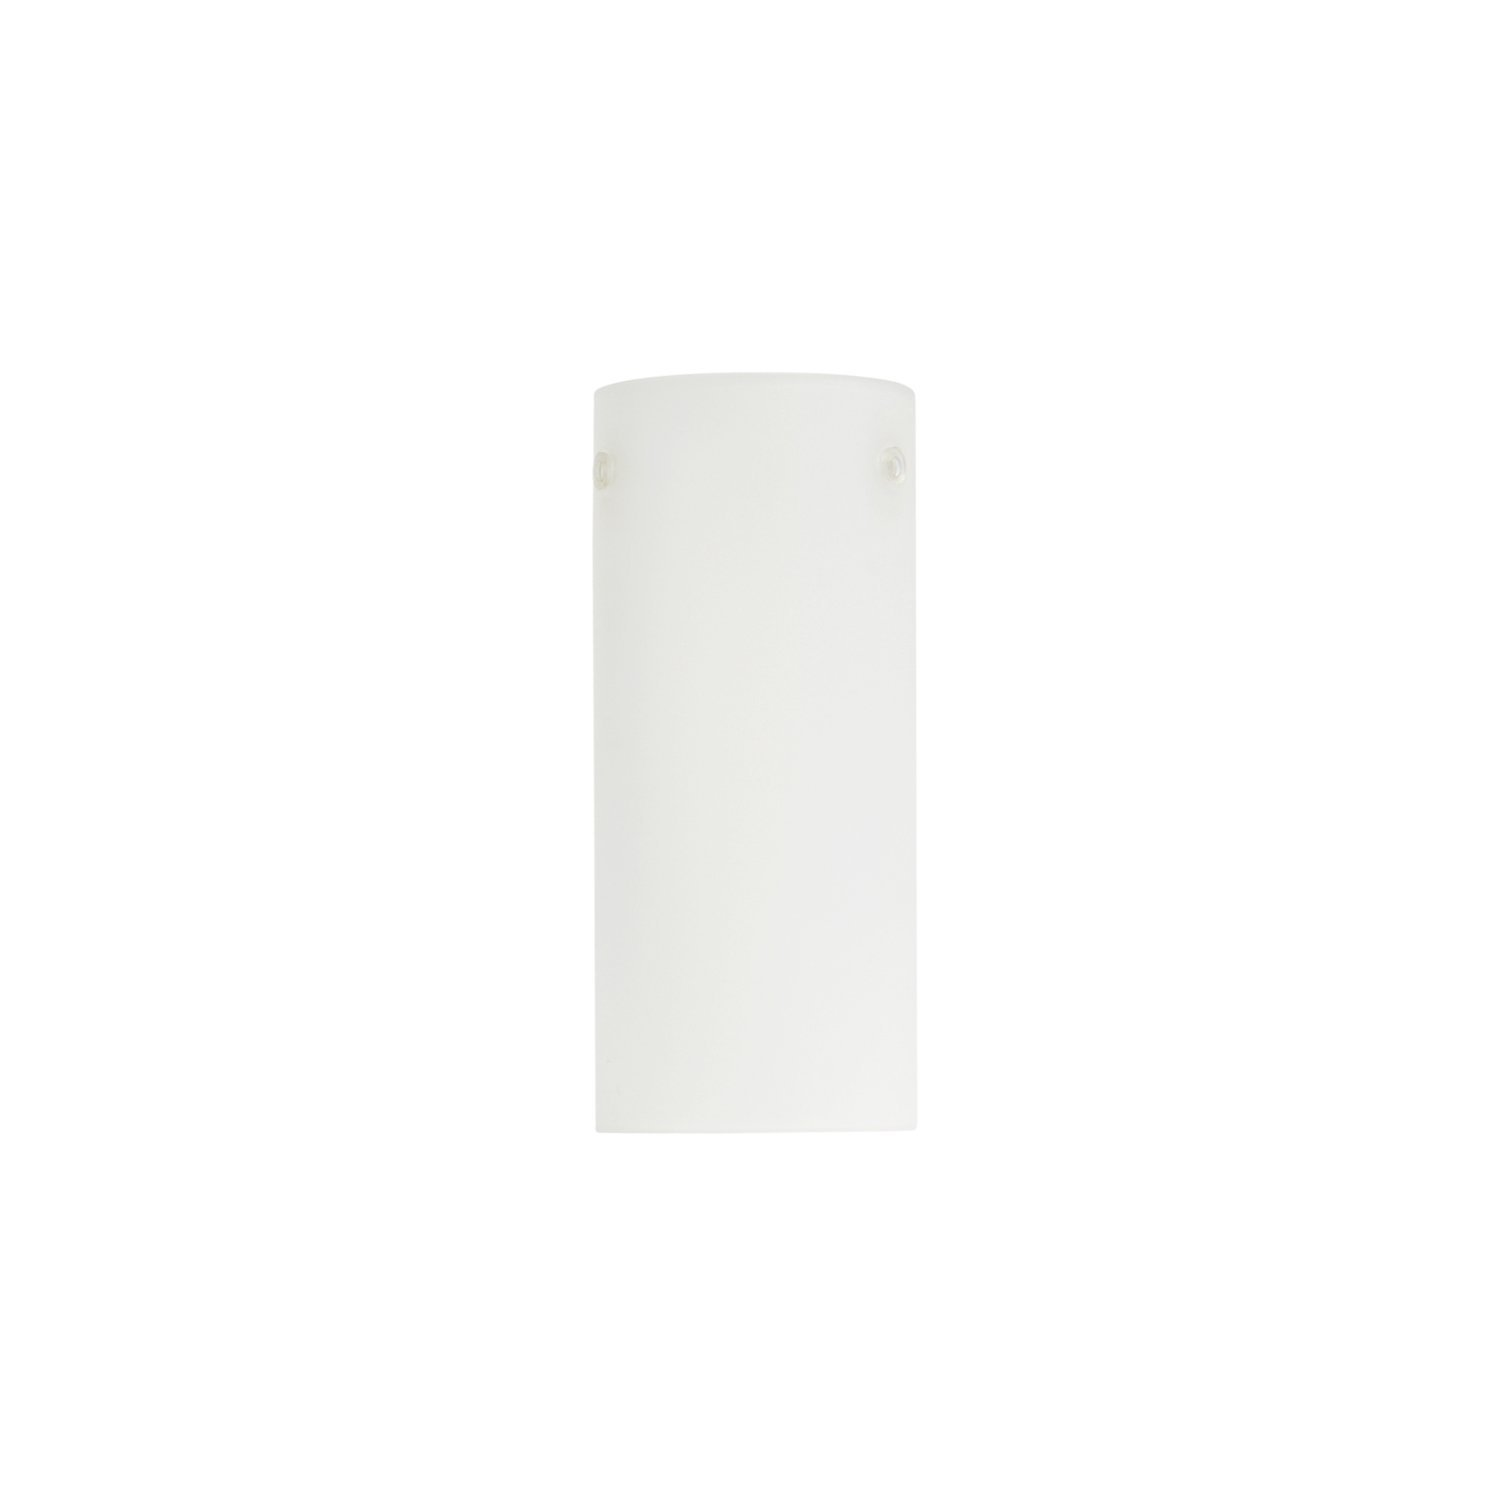 Linea di Liara Effimero Medium Frosted Replacement Glass Shade for LL-P314F by Linea di Liara